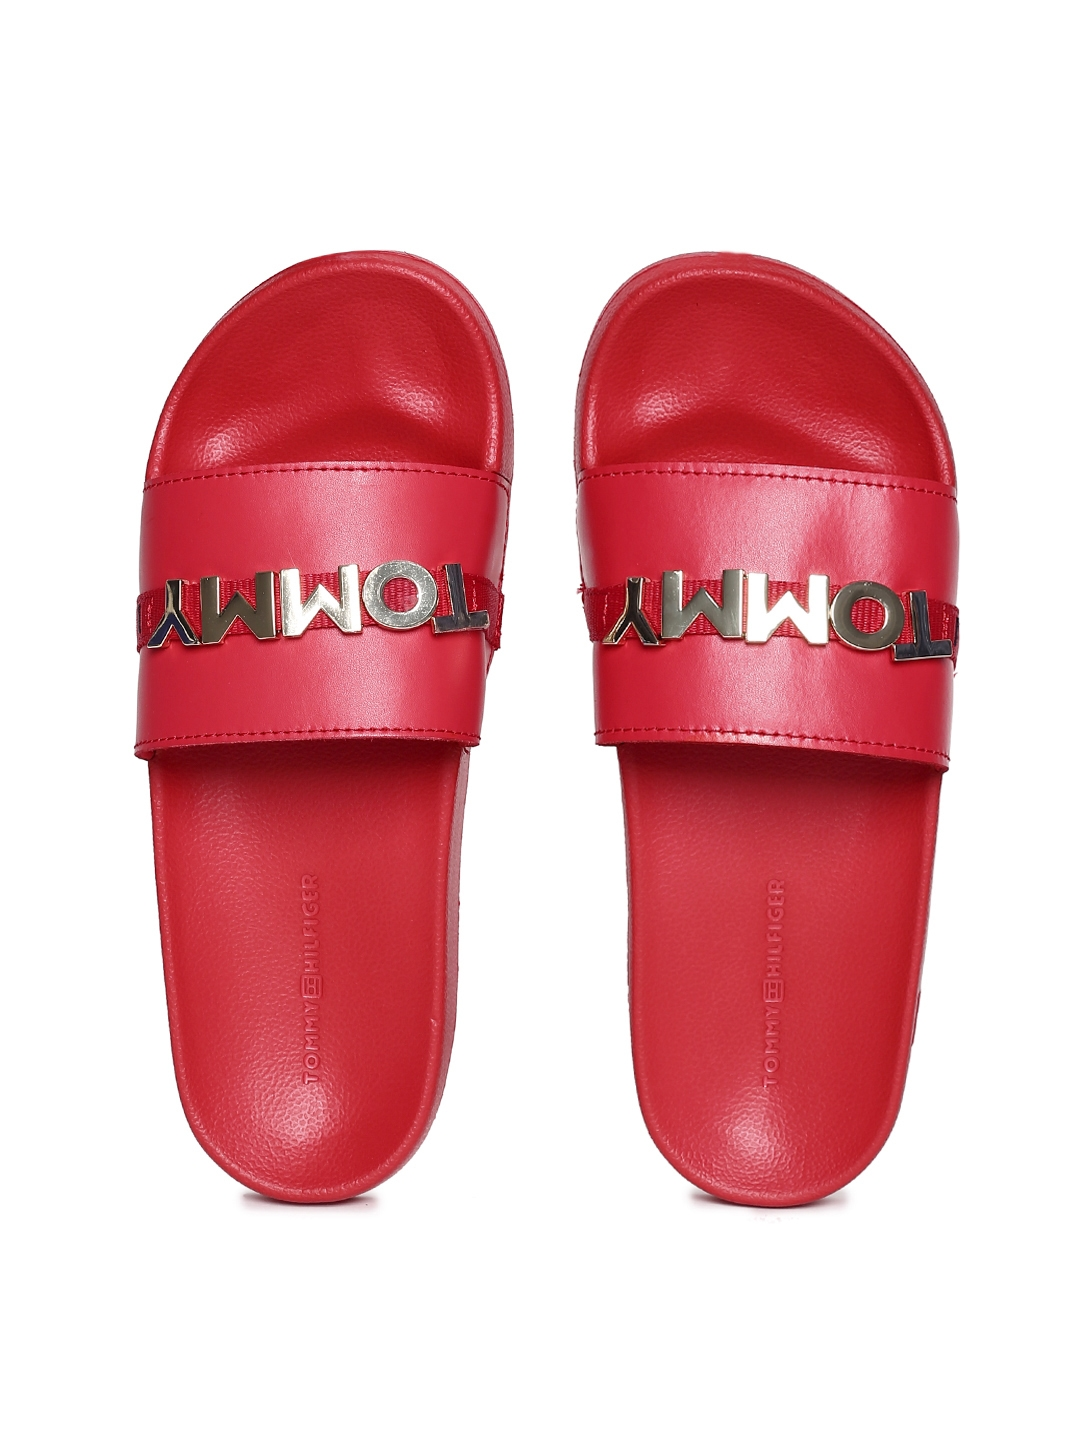 56fb713ec22d5 Buy Tommy Hilfiger Women Red Solid Beach Sliders - Flip Flops for ...